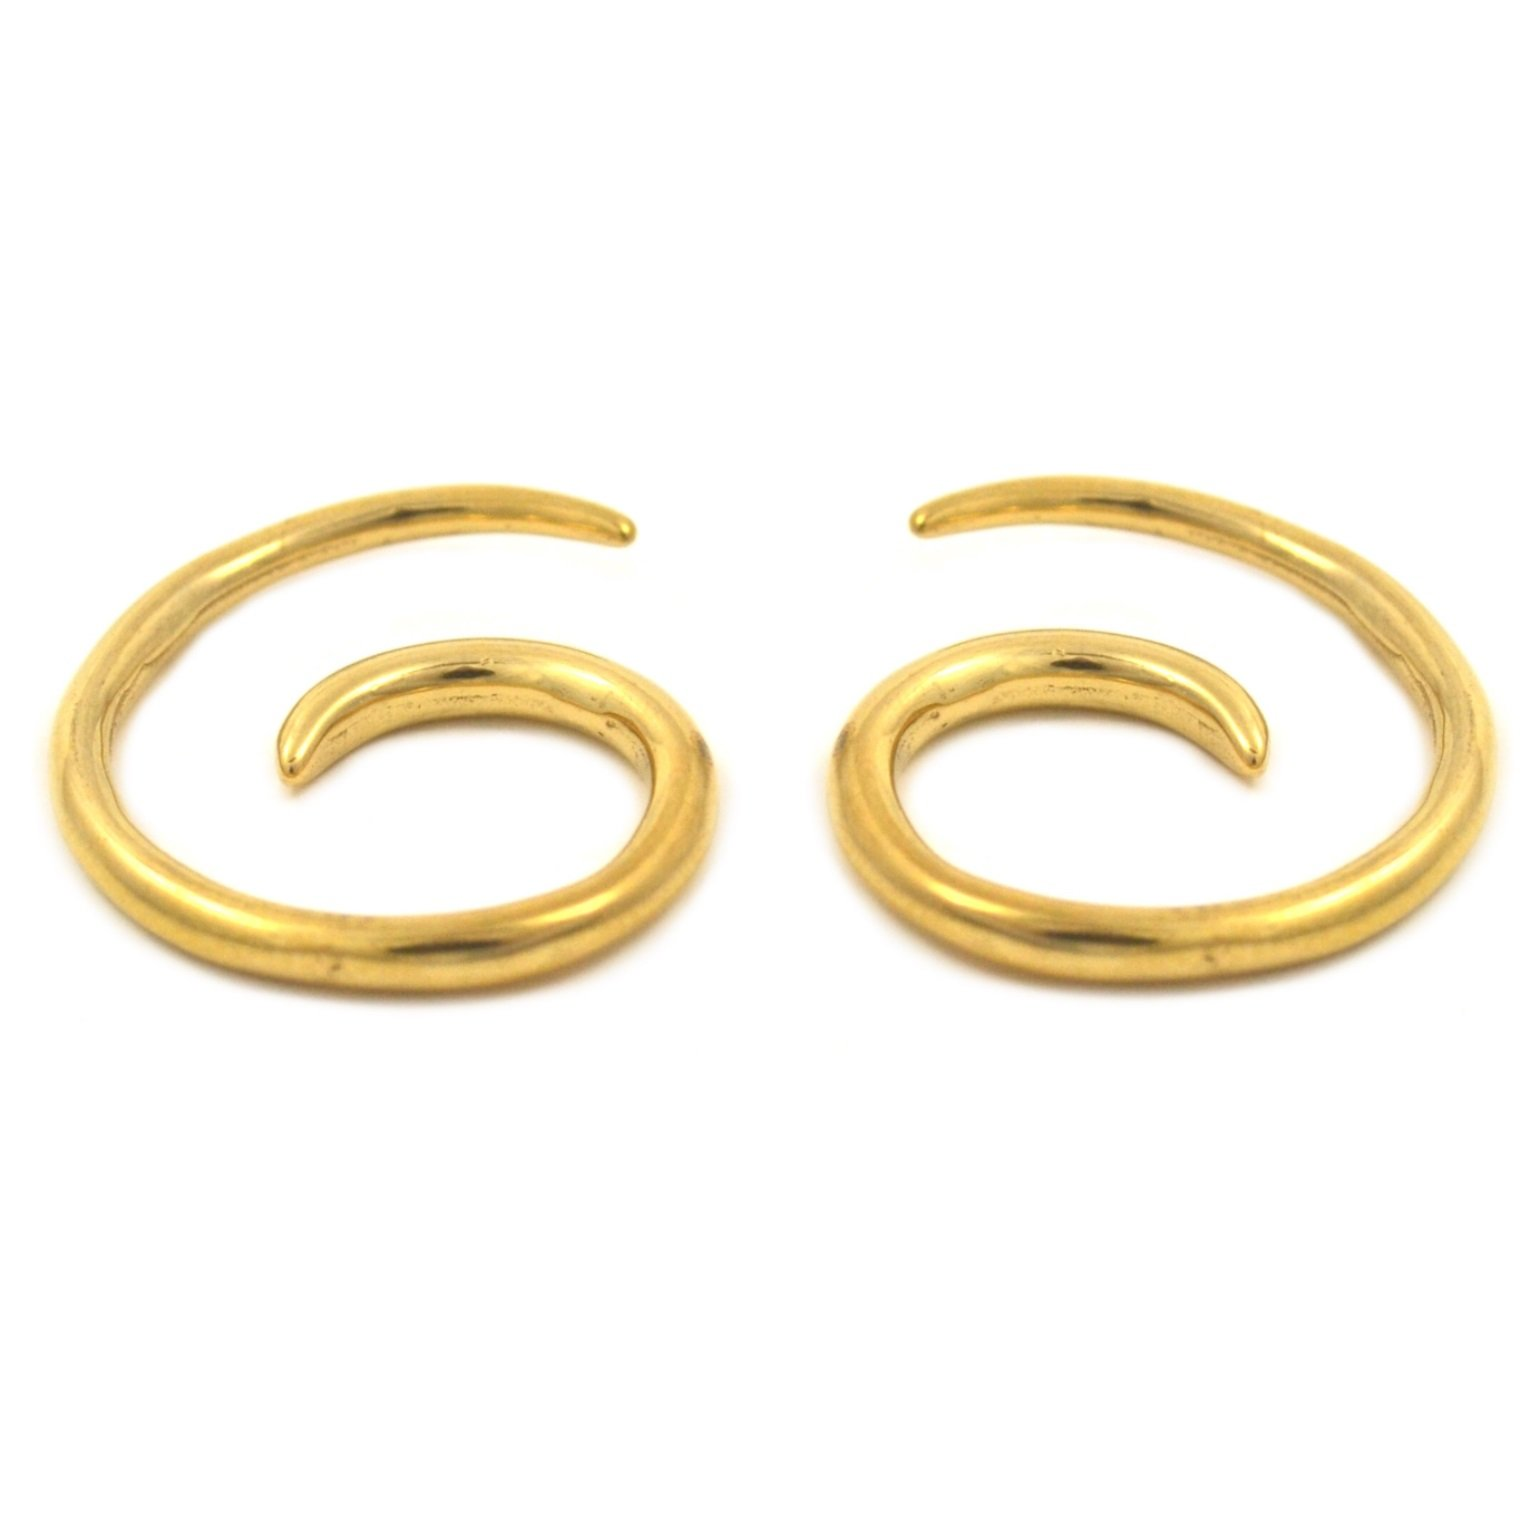 Pair (2) Gold Plated Spiral Tapers Ear Plugs Stretchers 6G 4mm